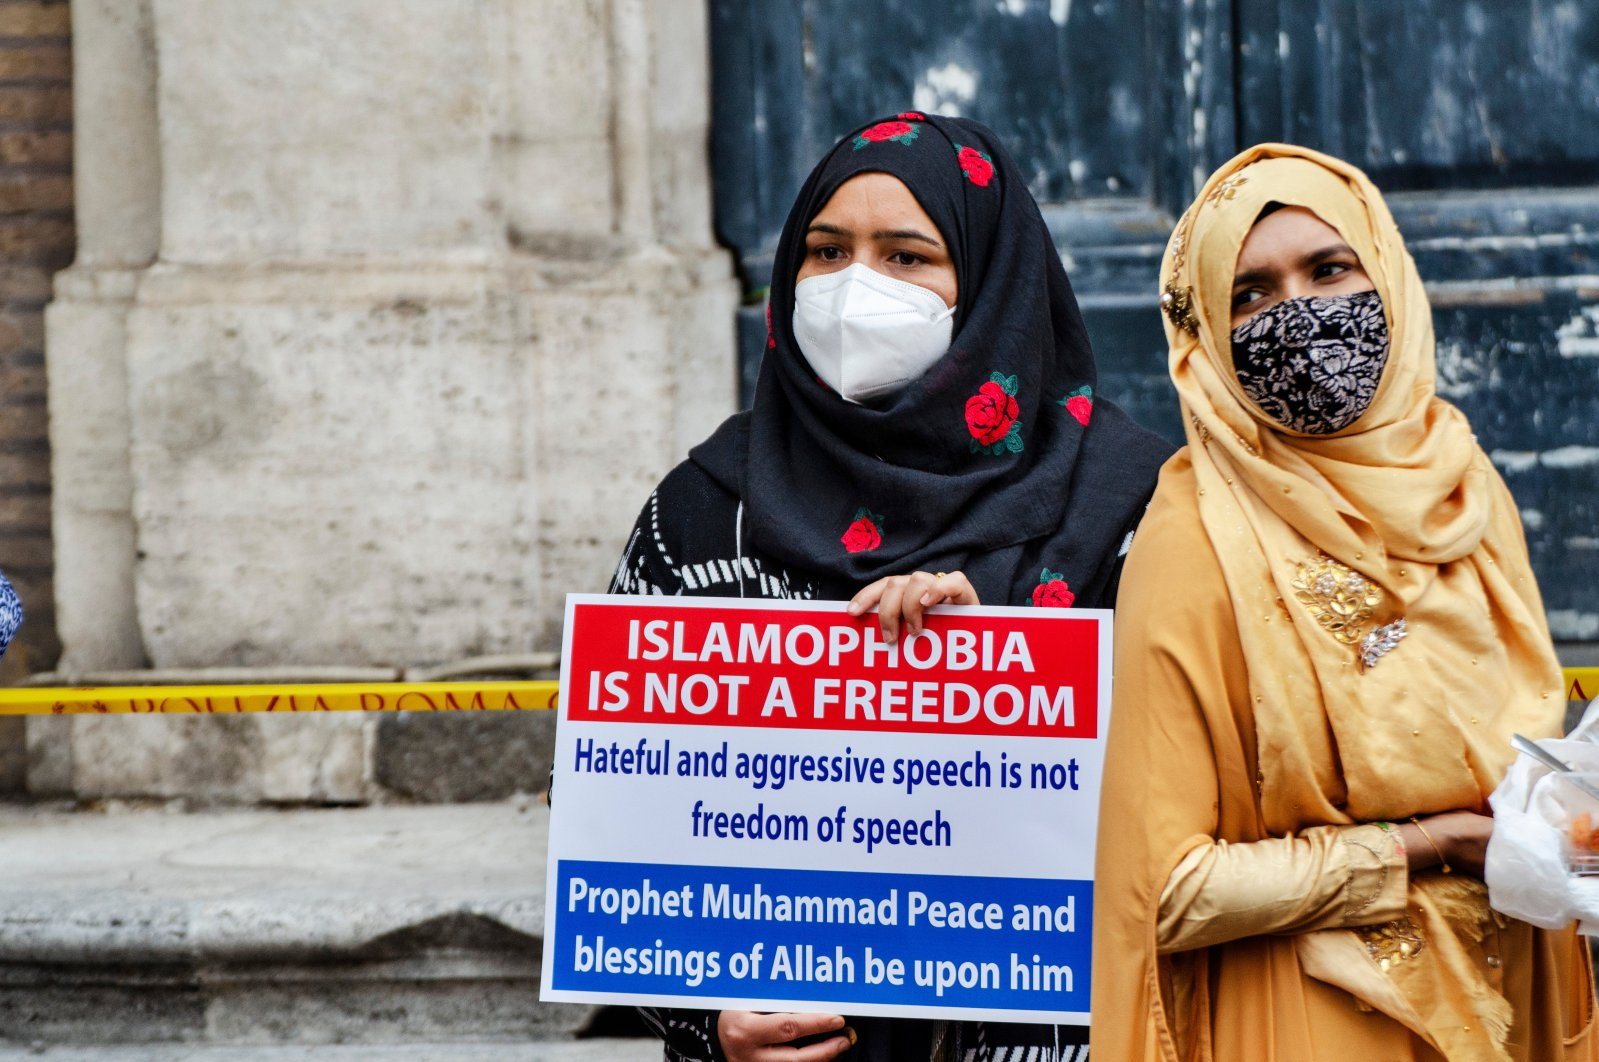 Members of an Italian Muslim association stage a sit-in and prayer to condemn what they see as persecutory acts against the Islamic community in France, Rome, Italy, Oct. 30, 2020. (Shutterstock Photo)